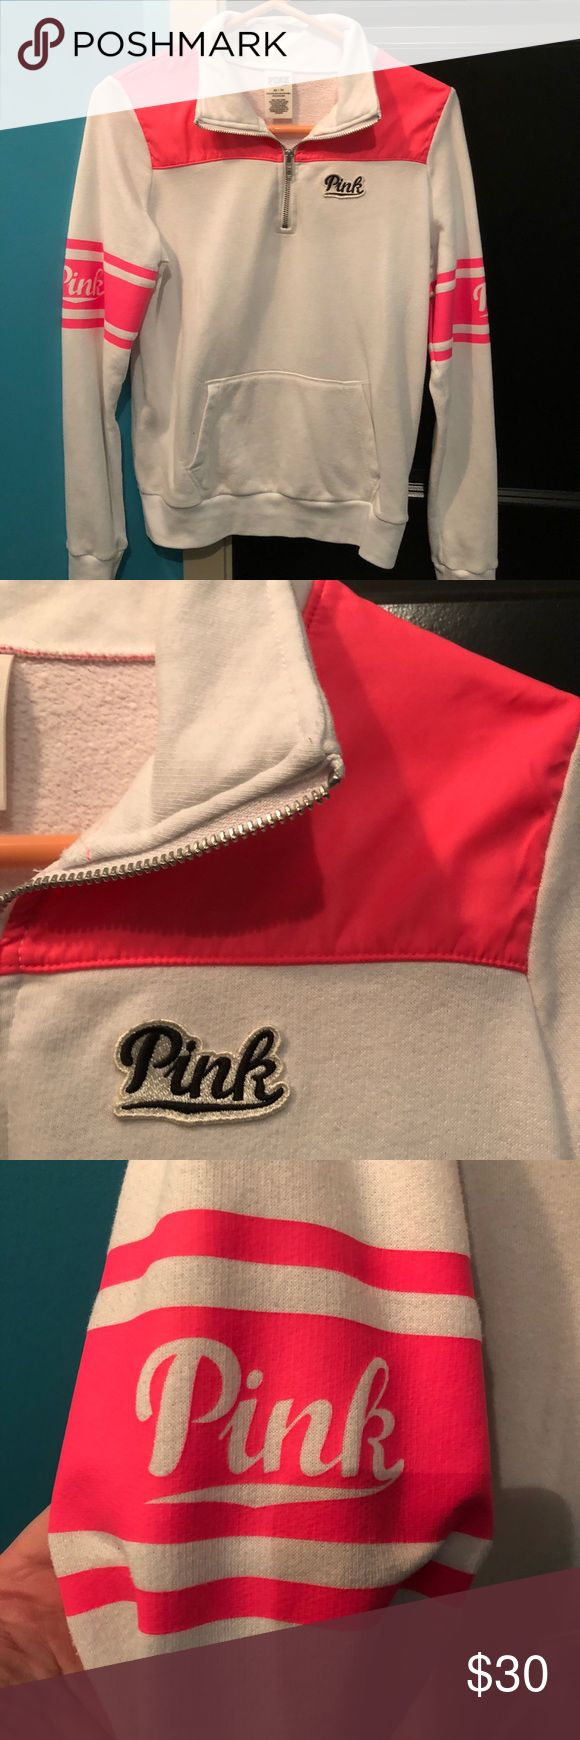 VS PINK Half Zip Windbreaker Sweatshirt Patch Great condition hardly worn VS PINK pink Half Zip Sweatshirt with PINK patch. It has a pink windbreaker material on the shoulders and part of the back. Says PINK on the arms. Super cute but it doesn't fit me any more. Size XS but could also fit an S and possibly a M. Please feel free to ask any questions! Thanks!💖✨🌿 PINK Victoria's Secret Tops Sweatshirts & Hoodies